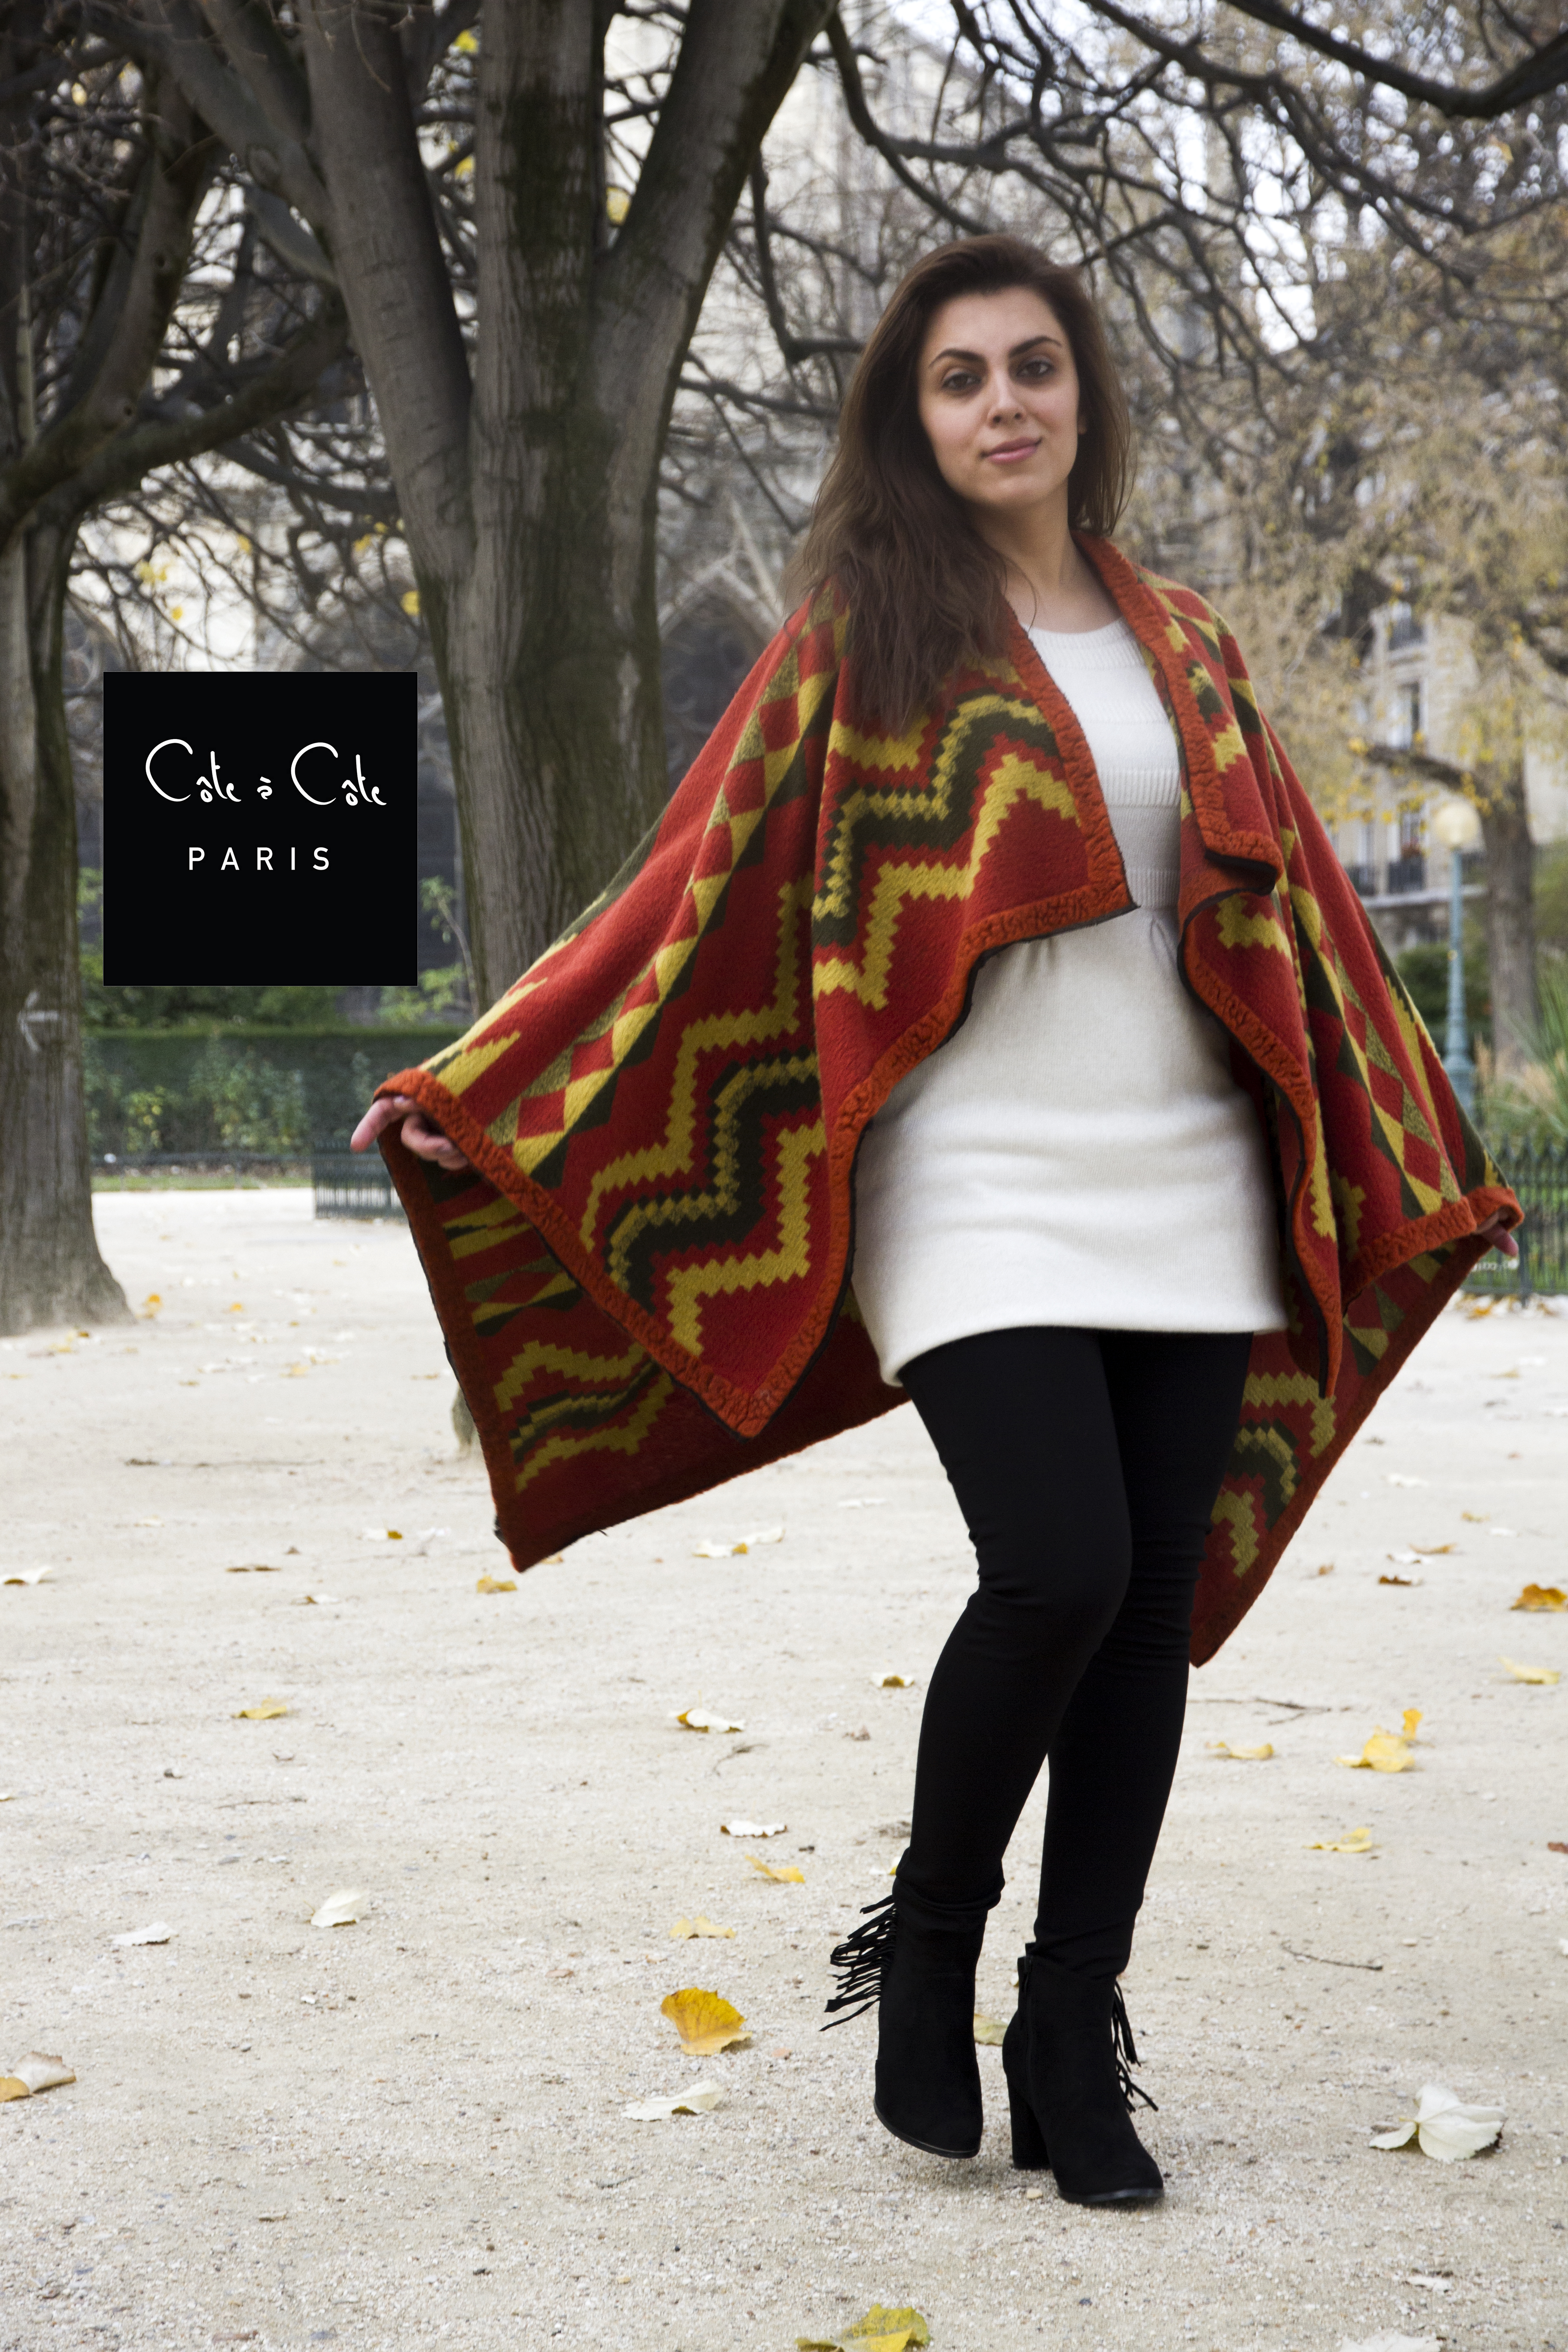 #womenfashion #parisiangirl #paris #capitaloffashion